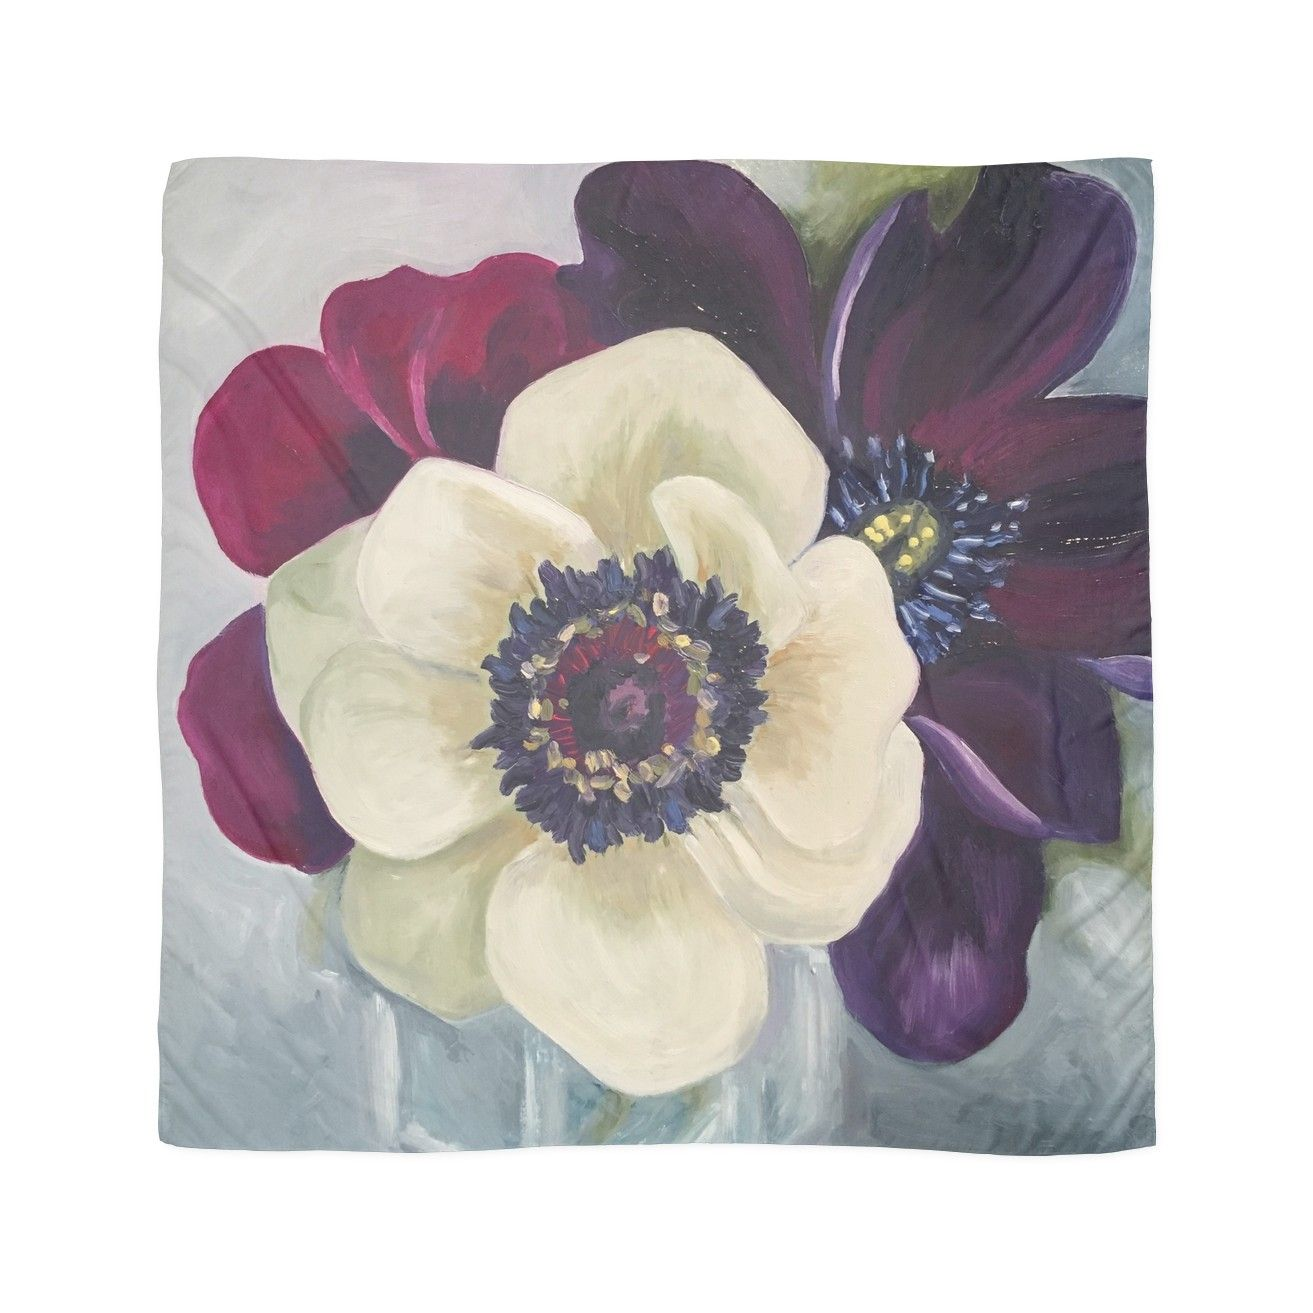 Anemone Flower Oil Painting By Angela Brown Art Scarf Abstract Flower Art Oil Painting Flowers Painting